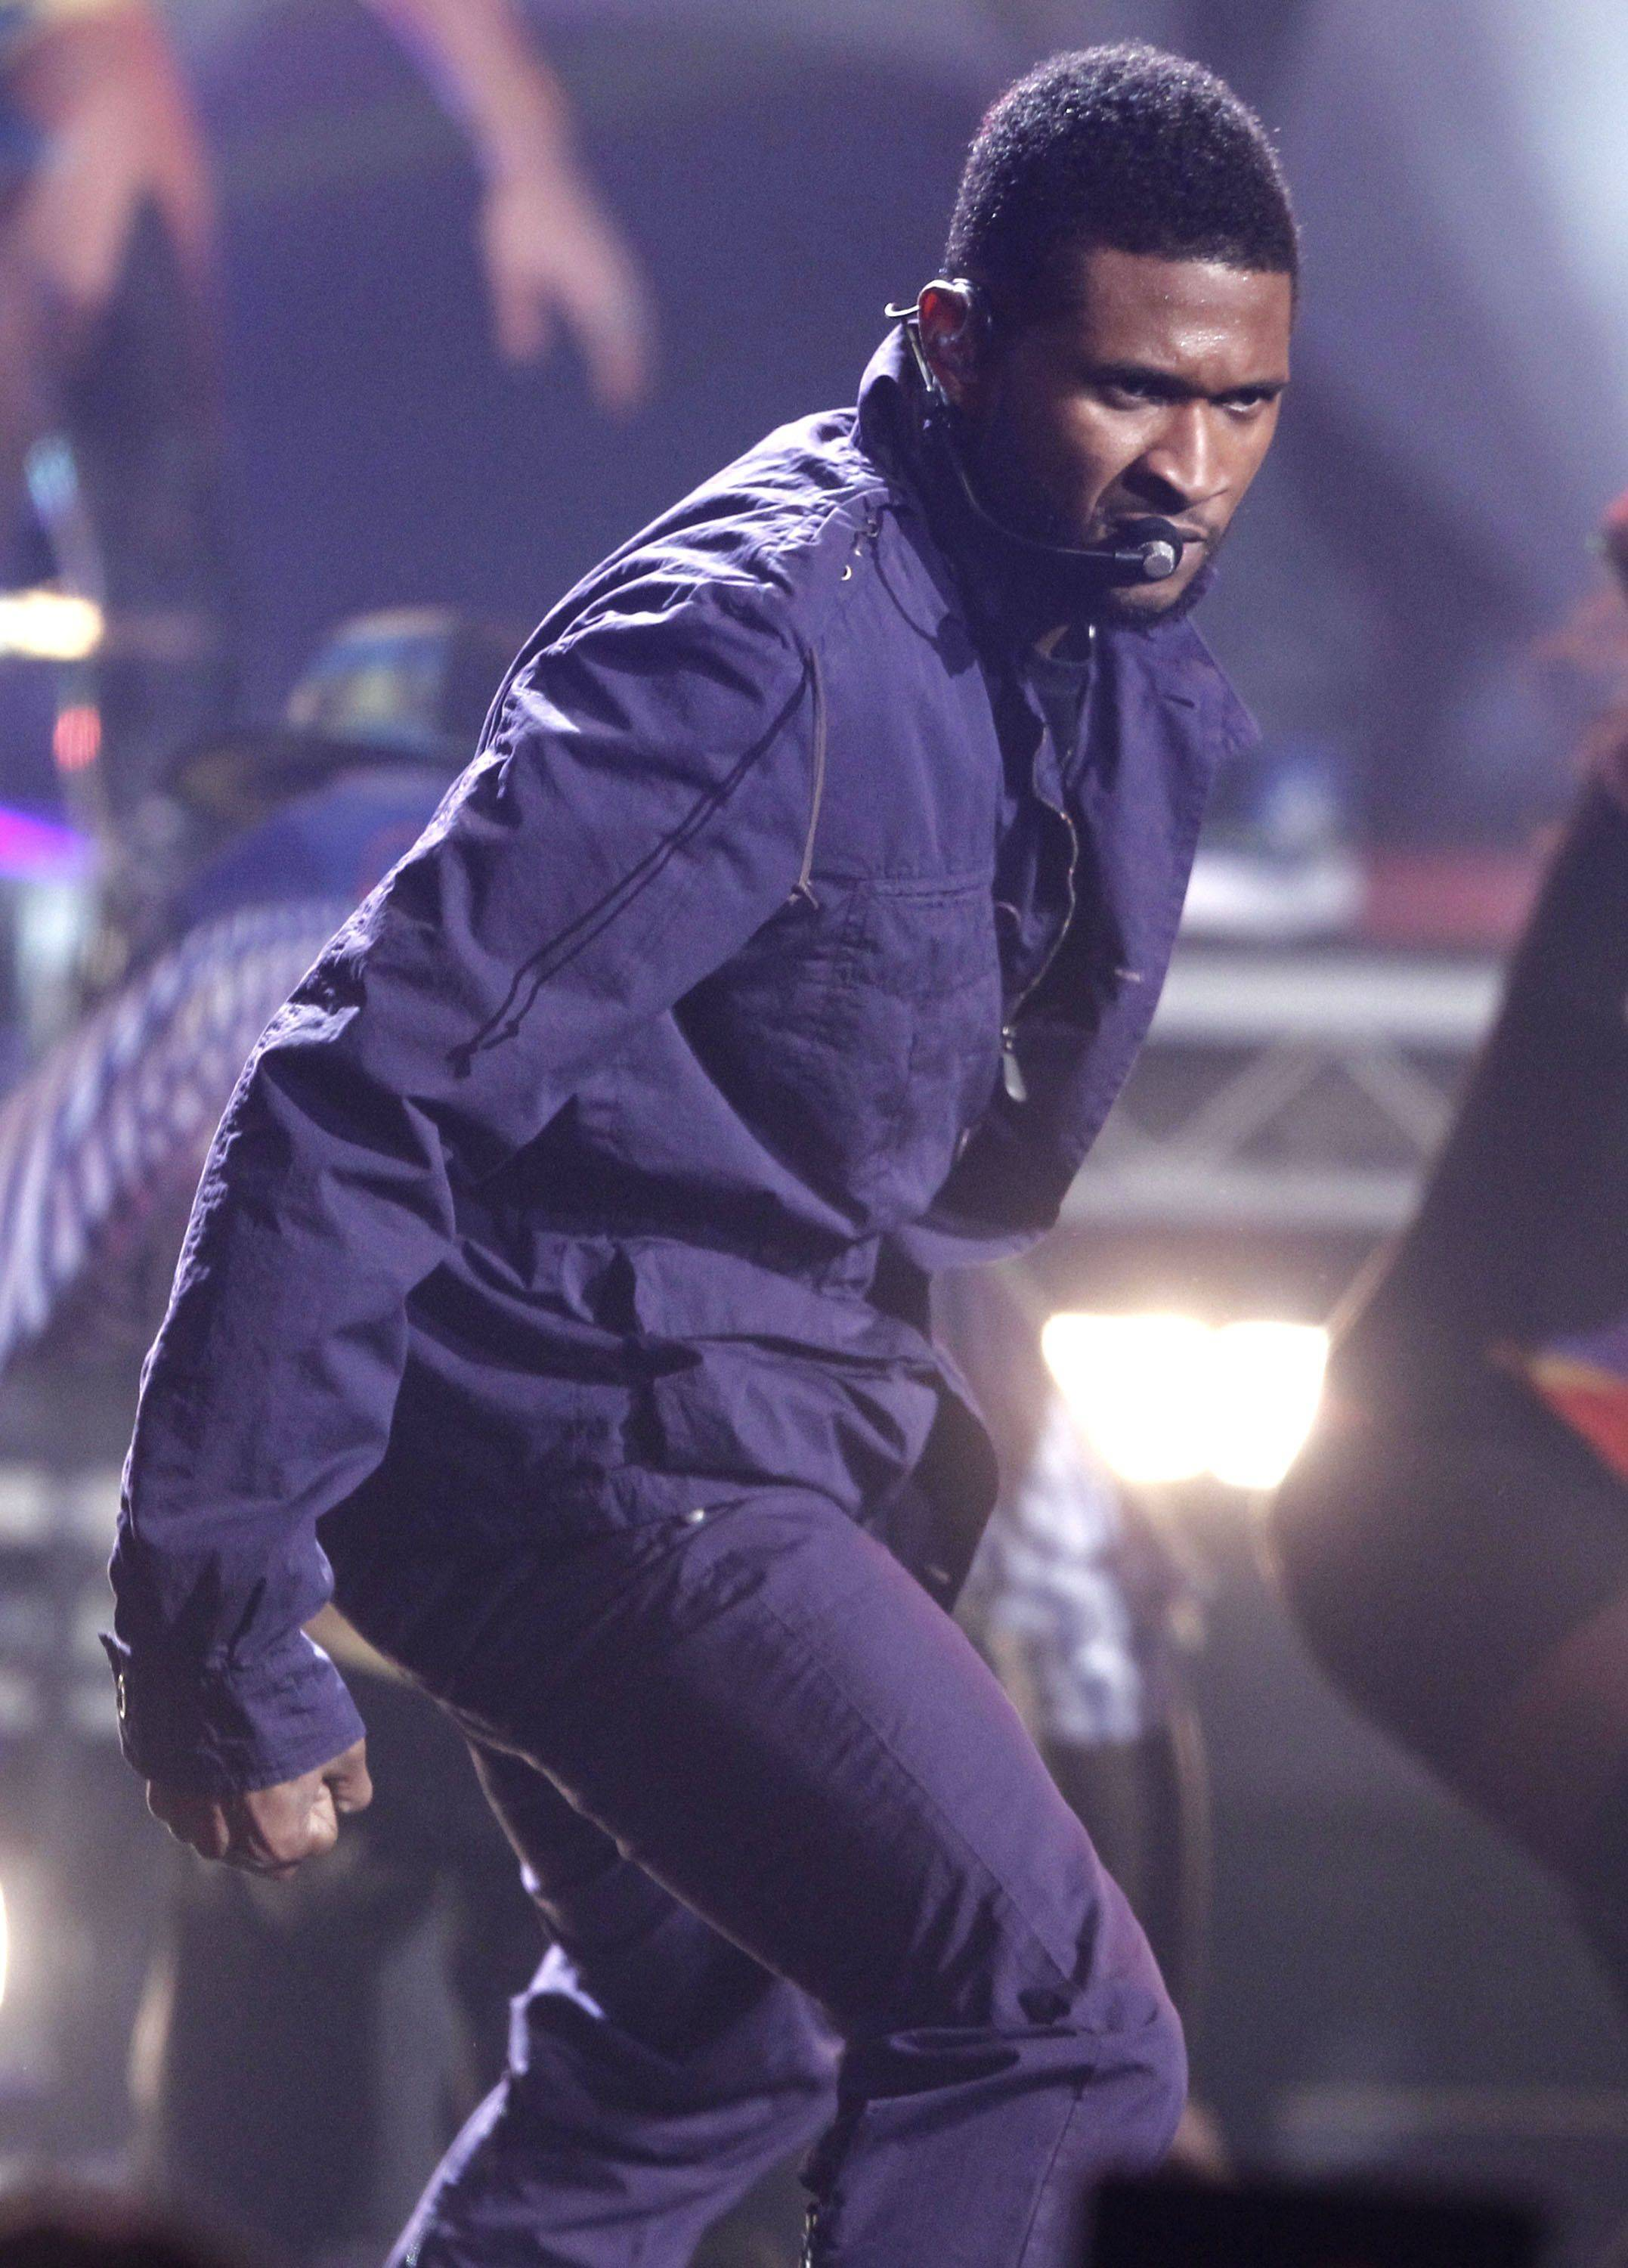 Usher performs at the 38th Annual American Music Awards on Sunday, Nov. 21, 2010 in Los Angeles.